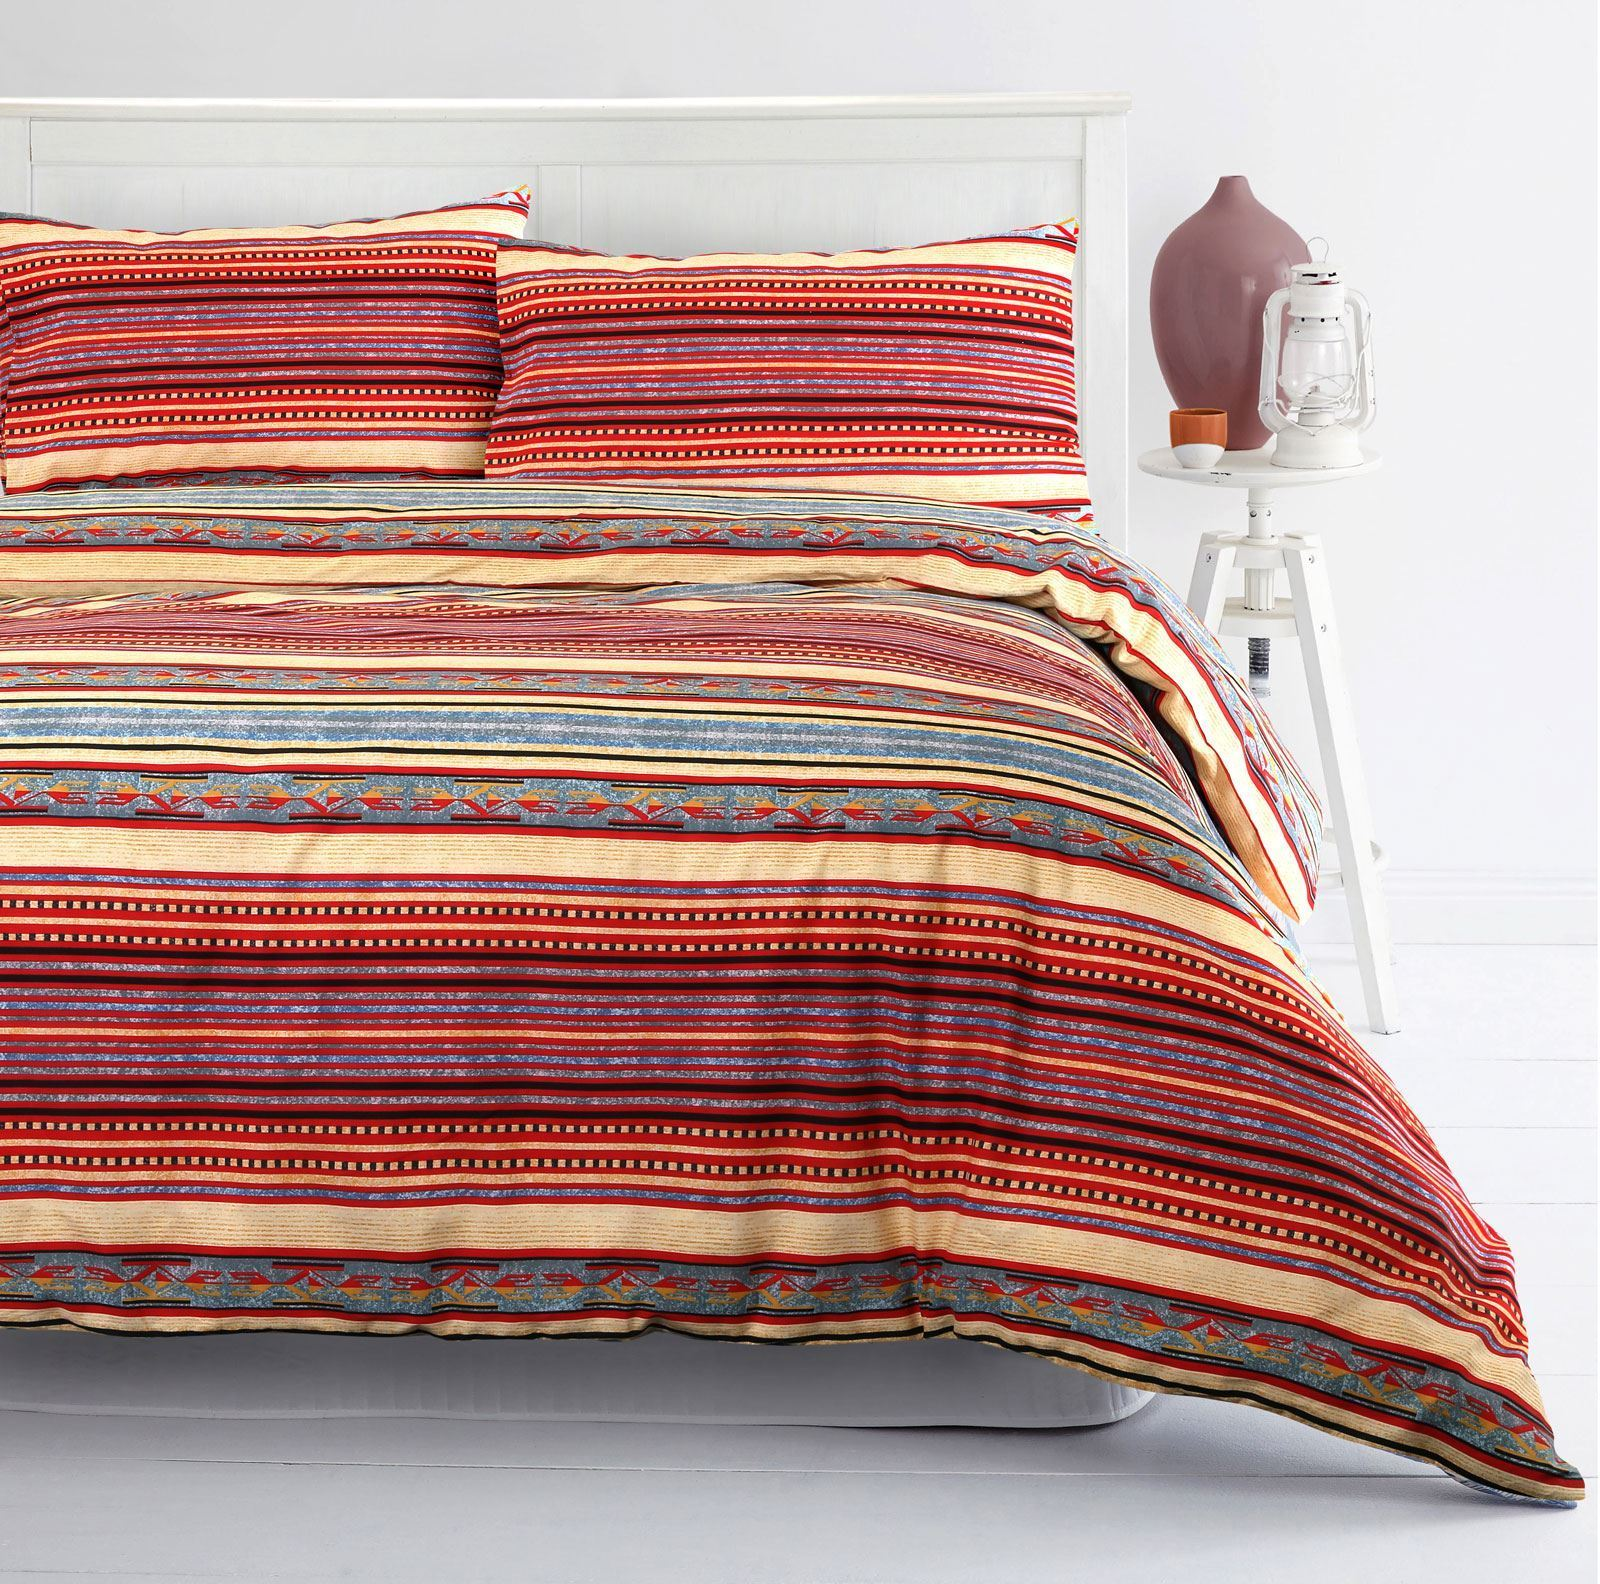 Moroccan Duvet Cover Set 100 Cotton Boho Ethnic Bedding Single Double King Size Ebay